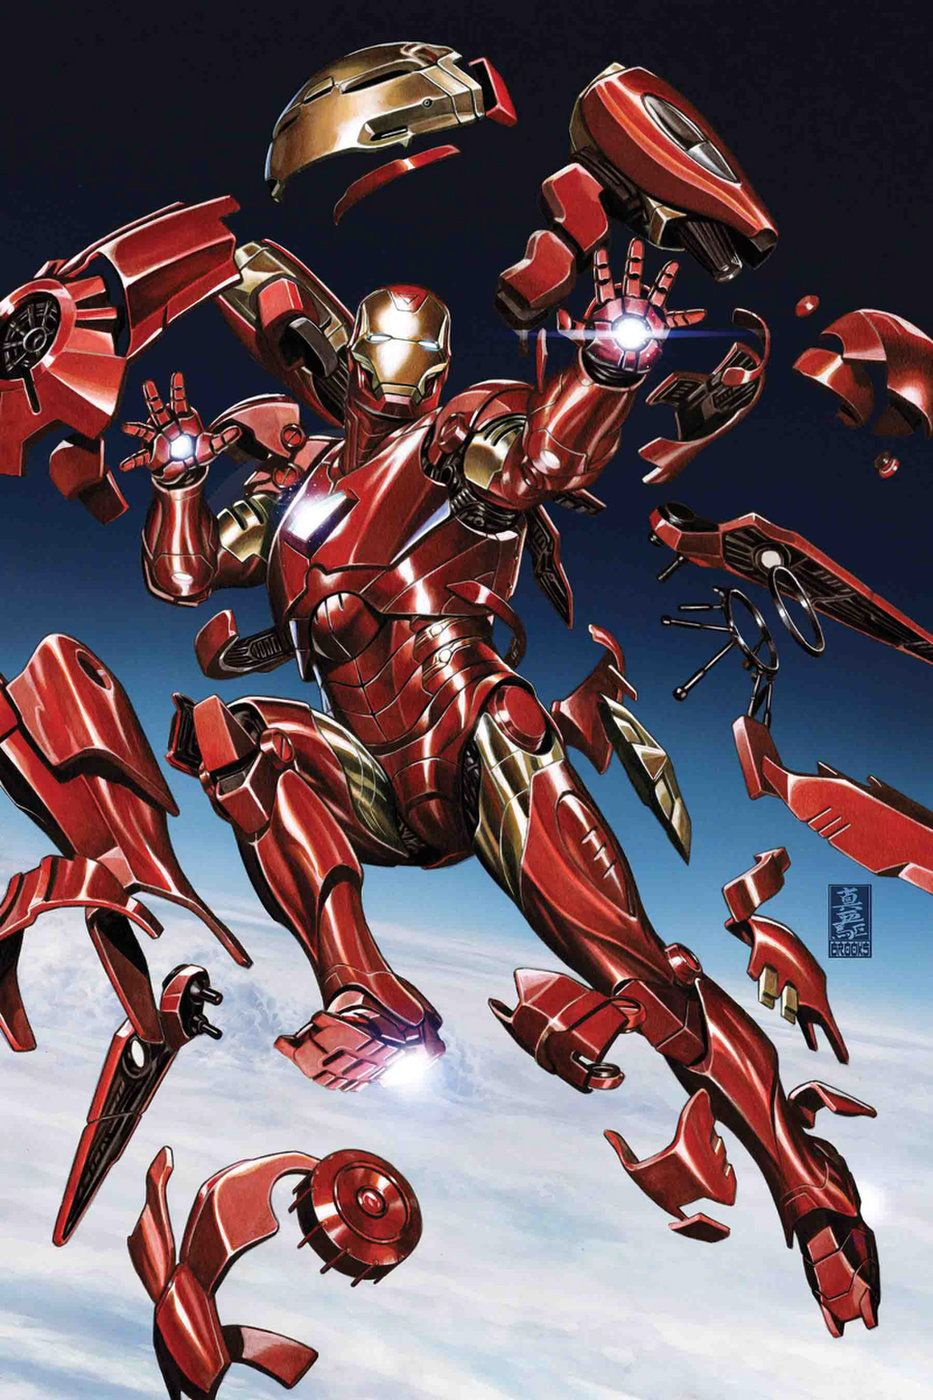 Tony Stark Iron Man 2 Dan Slott W Valerio Schiti A Cover By Alexander Lozano Variant Cover By Mark Brooks Iron Man Comic Iron Man Art Iron Man